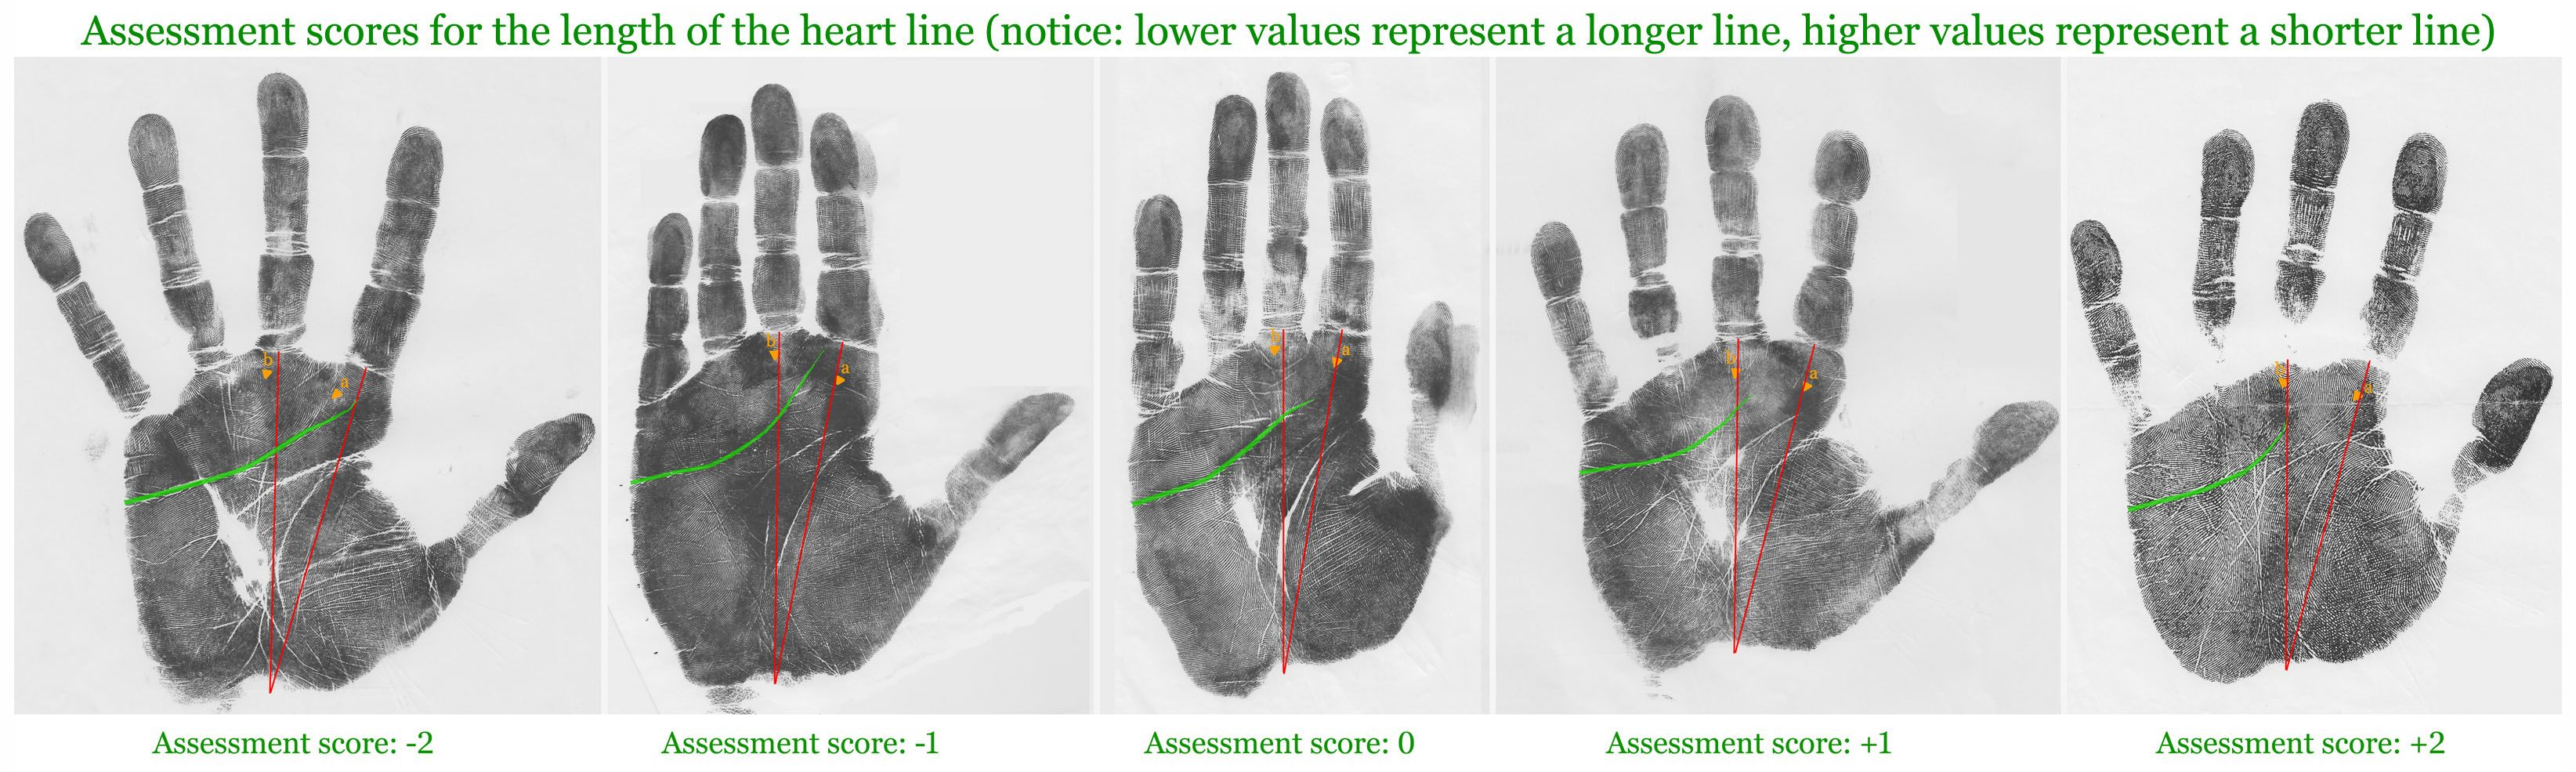 Assessment scores for the length of the heart line [upper transverse crease].